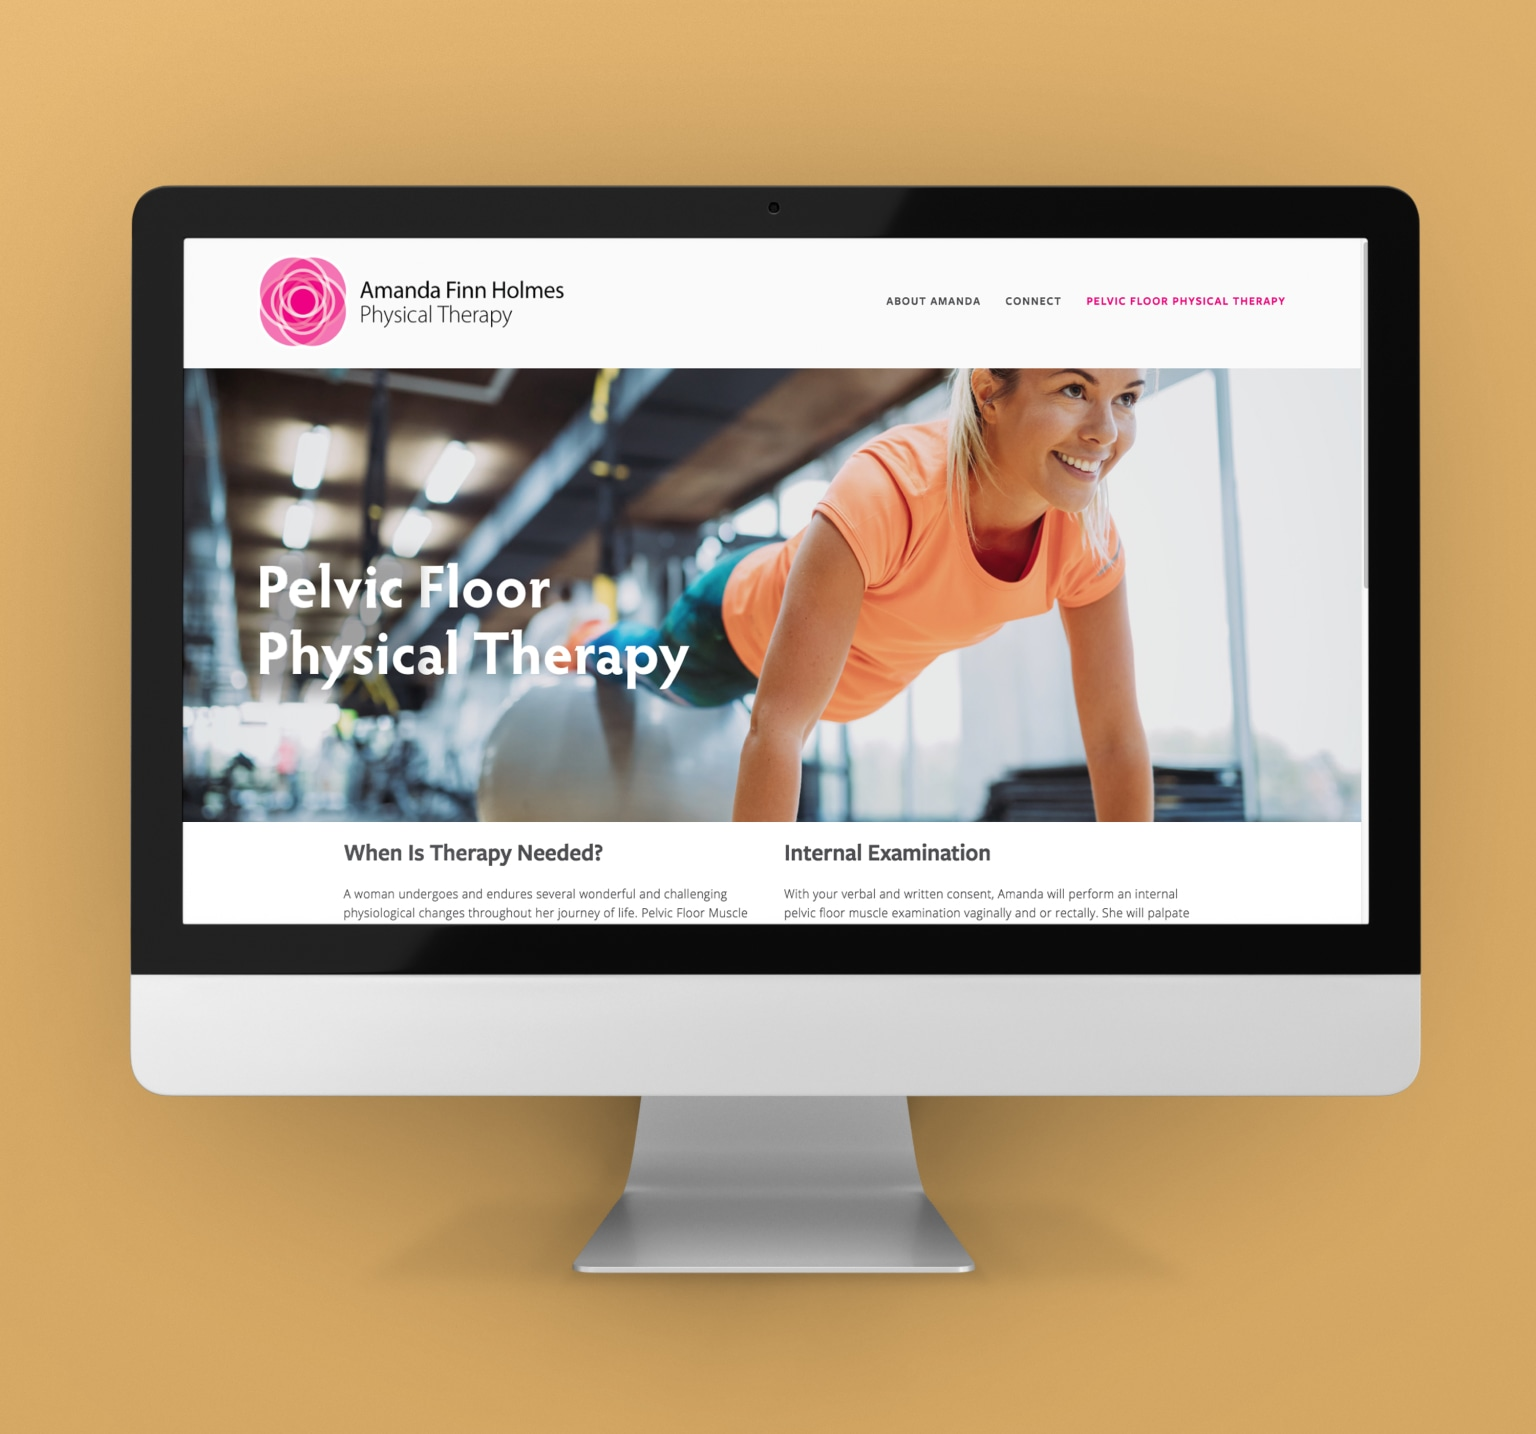 Amanda Finn Holmes Physical Therapy Branding & Website